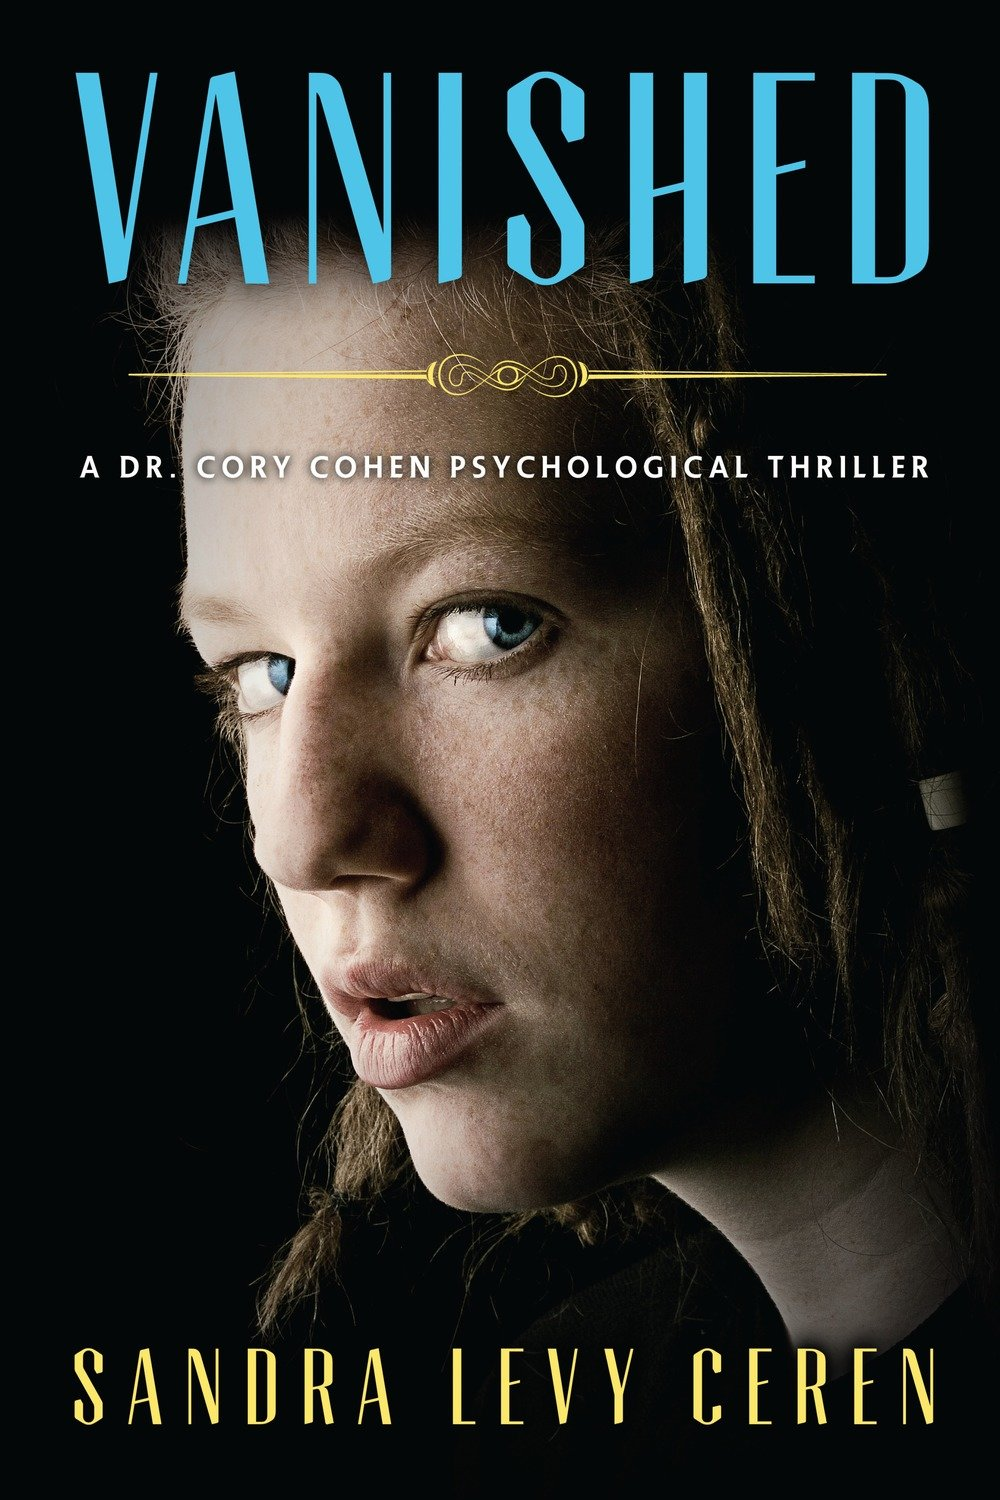 Vanished: A Dr. Cory Cohen Psychological Thriller